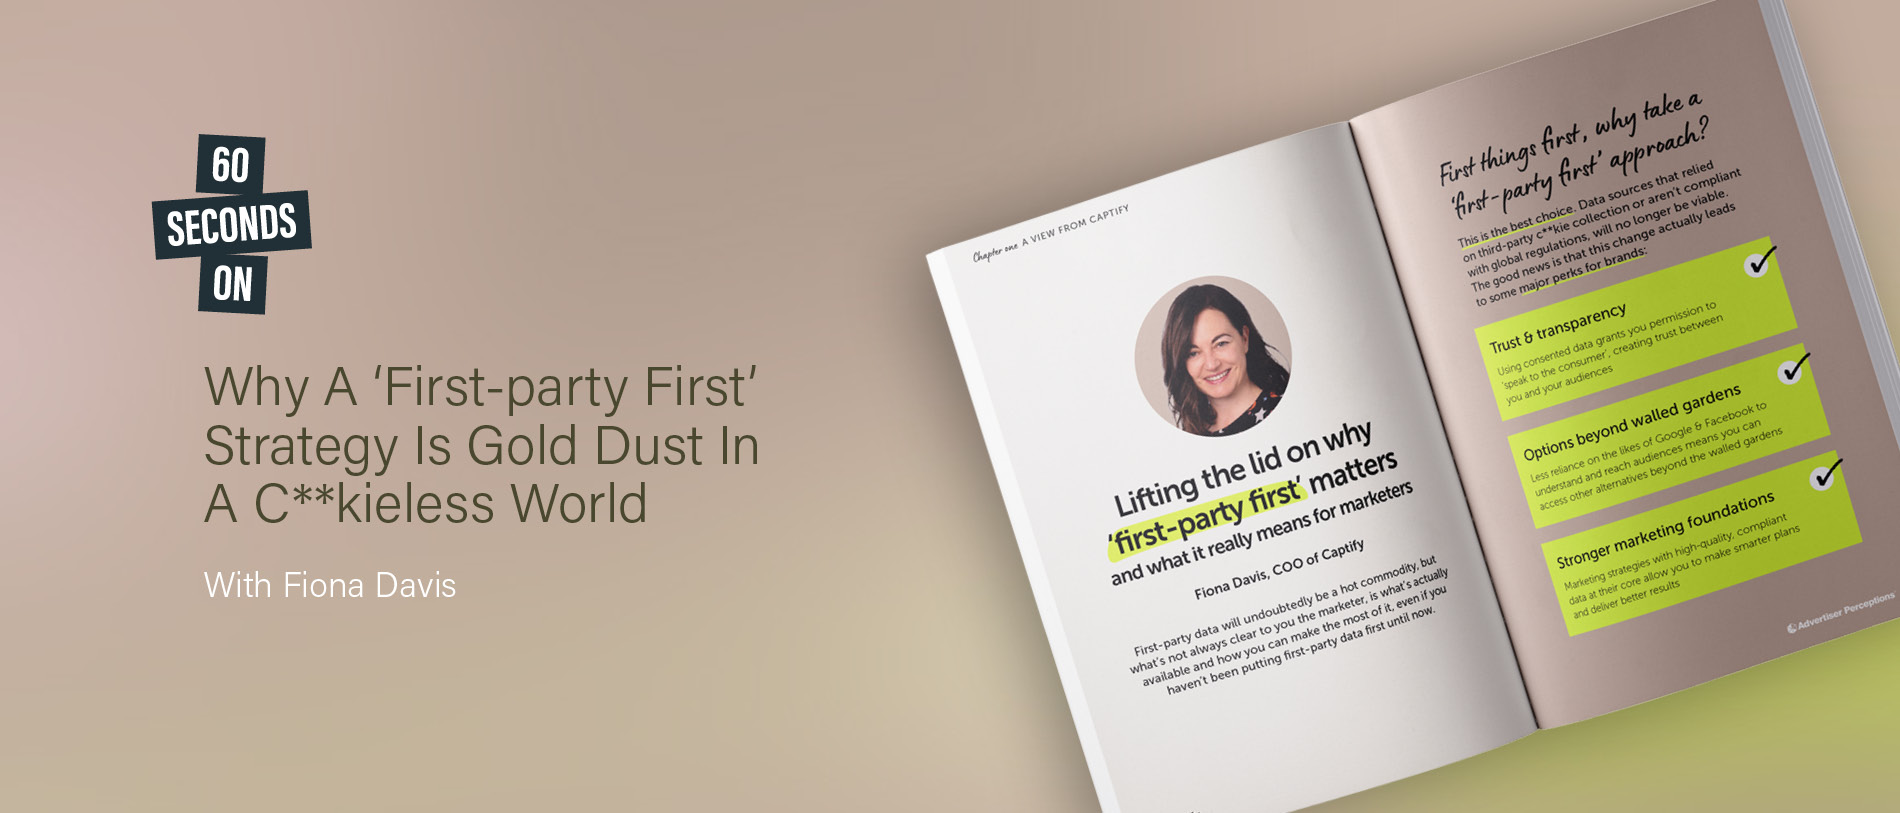 60 Seconds On: Why A 'First-Party First' Strategy Is Gold Dust In A C**kieless World—With Fiona Davis